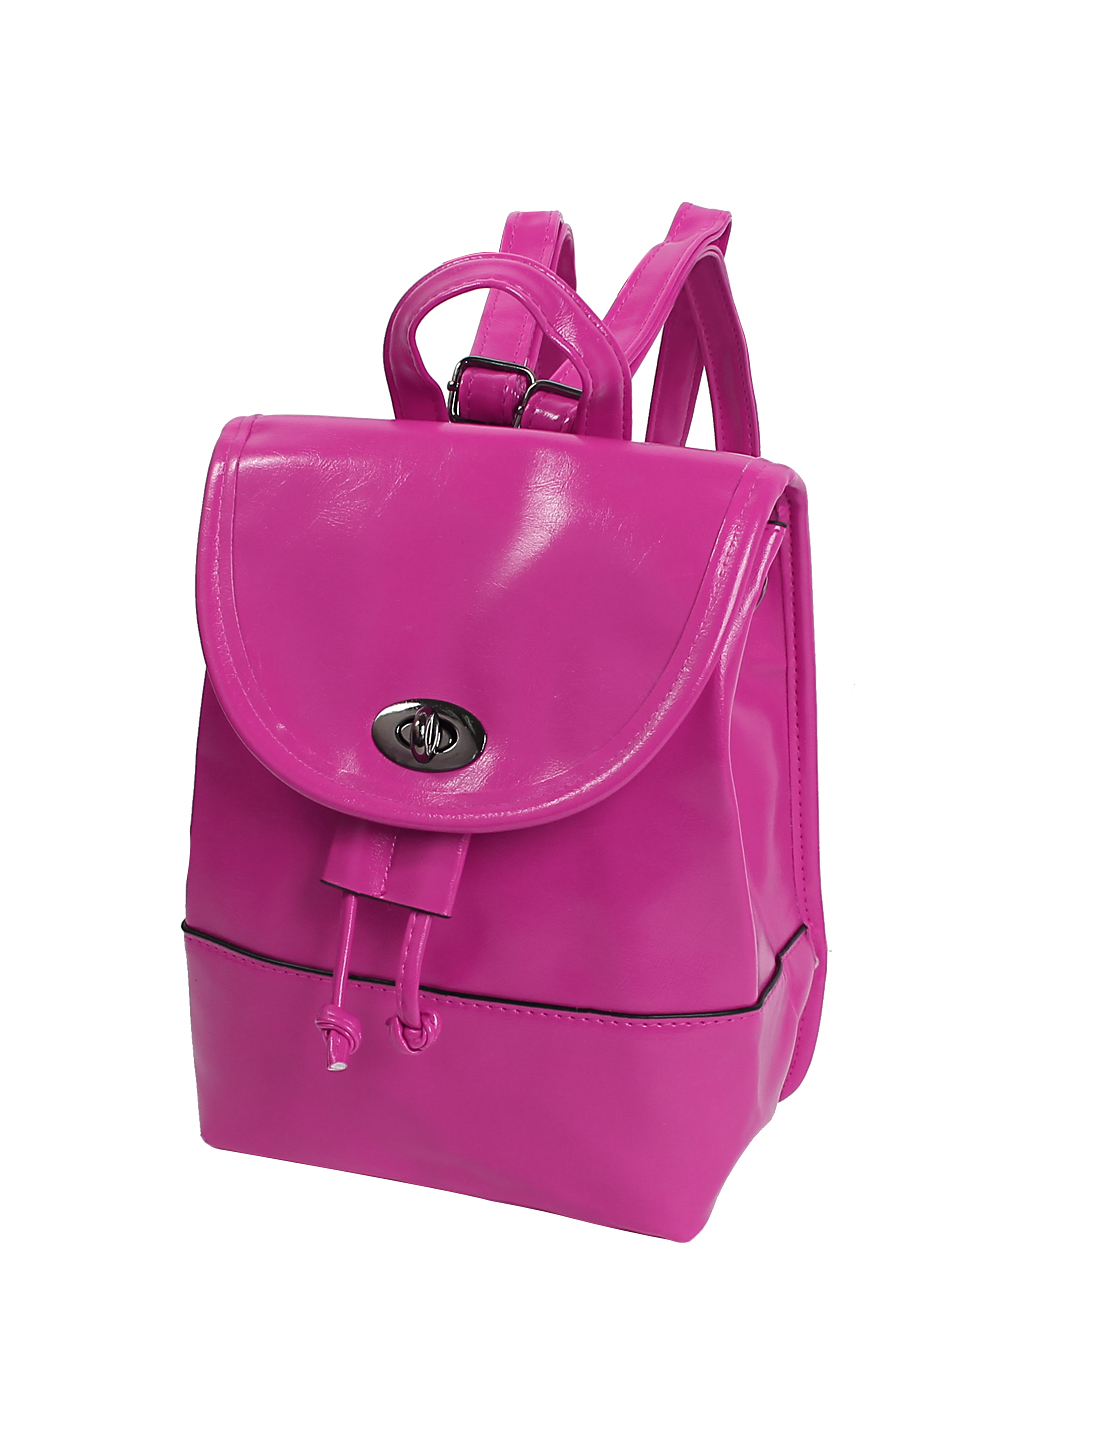 2015 New Pure Candy Color Cute PU Leather Turn-lock Clasp Backpack Satchel Fuchsia